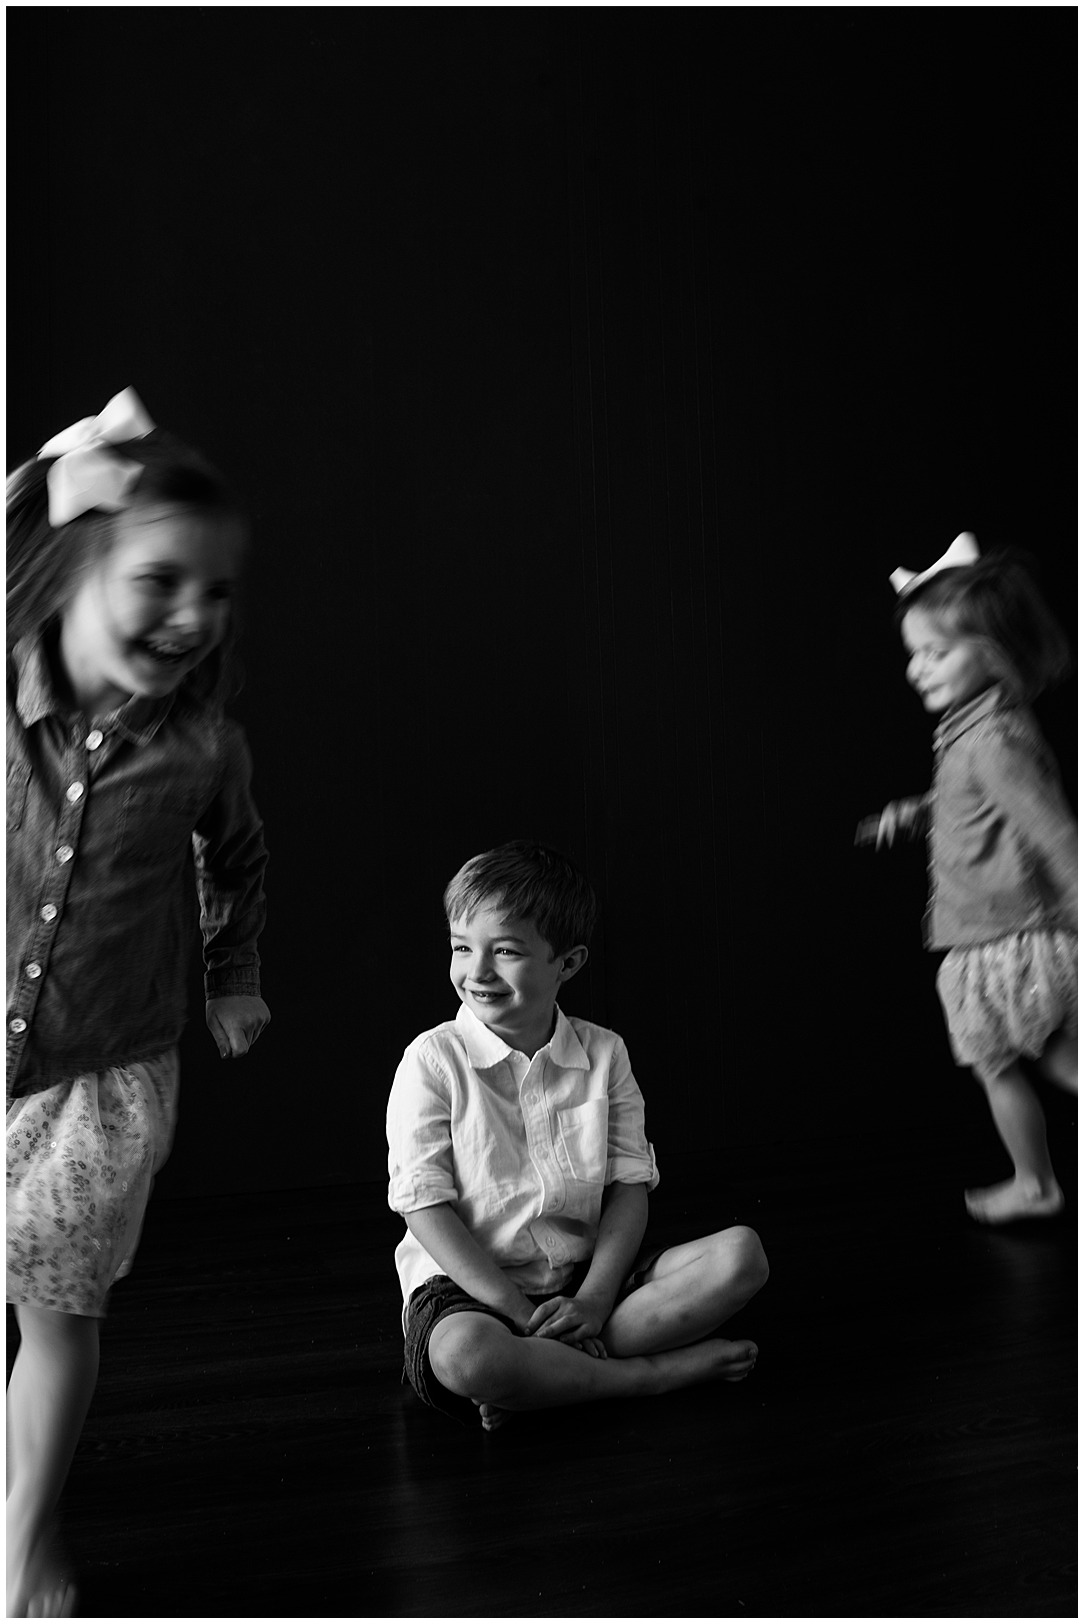 Tessa_marie_photography_atlanta_childrens_fine_art_black_and_white_photography_family_photographer_0026.jpg